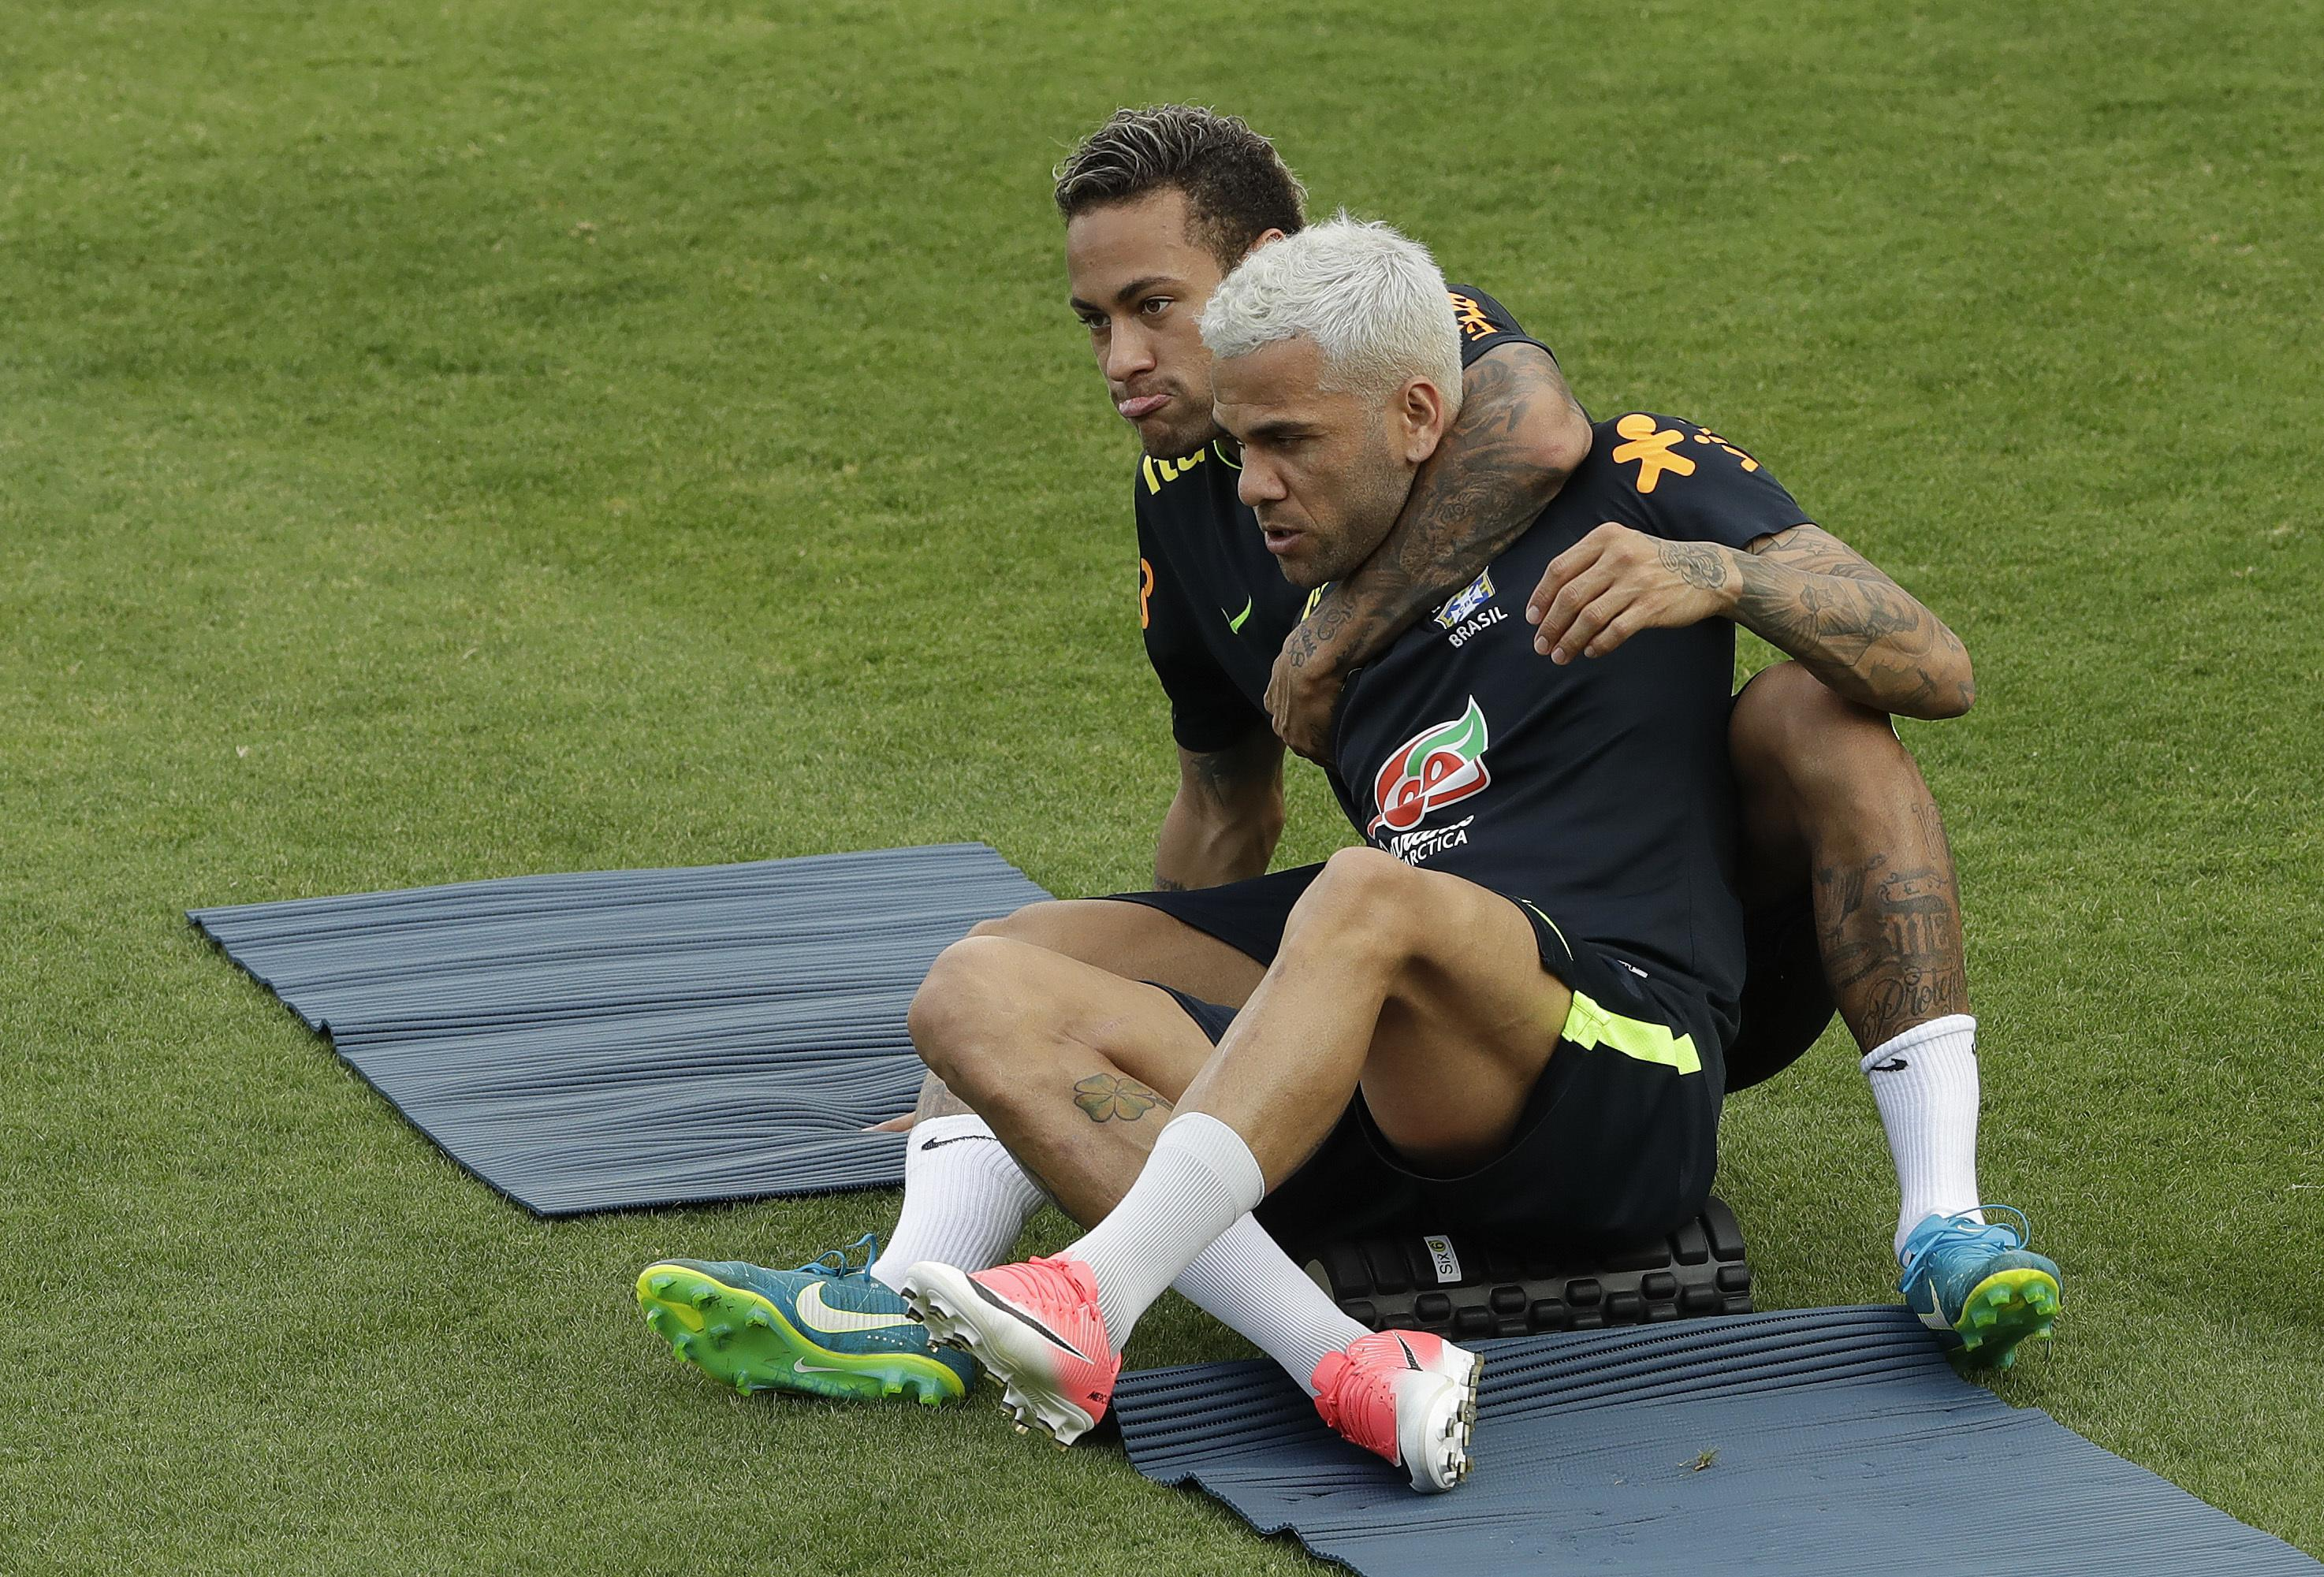 Neymar and Alves have played together at Barcelona as well as for Brazil and PSG